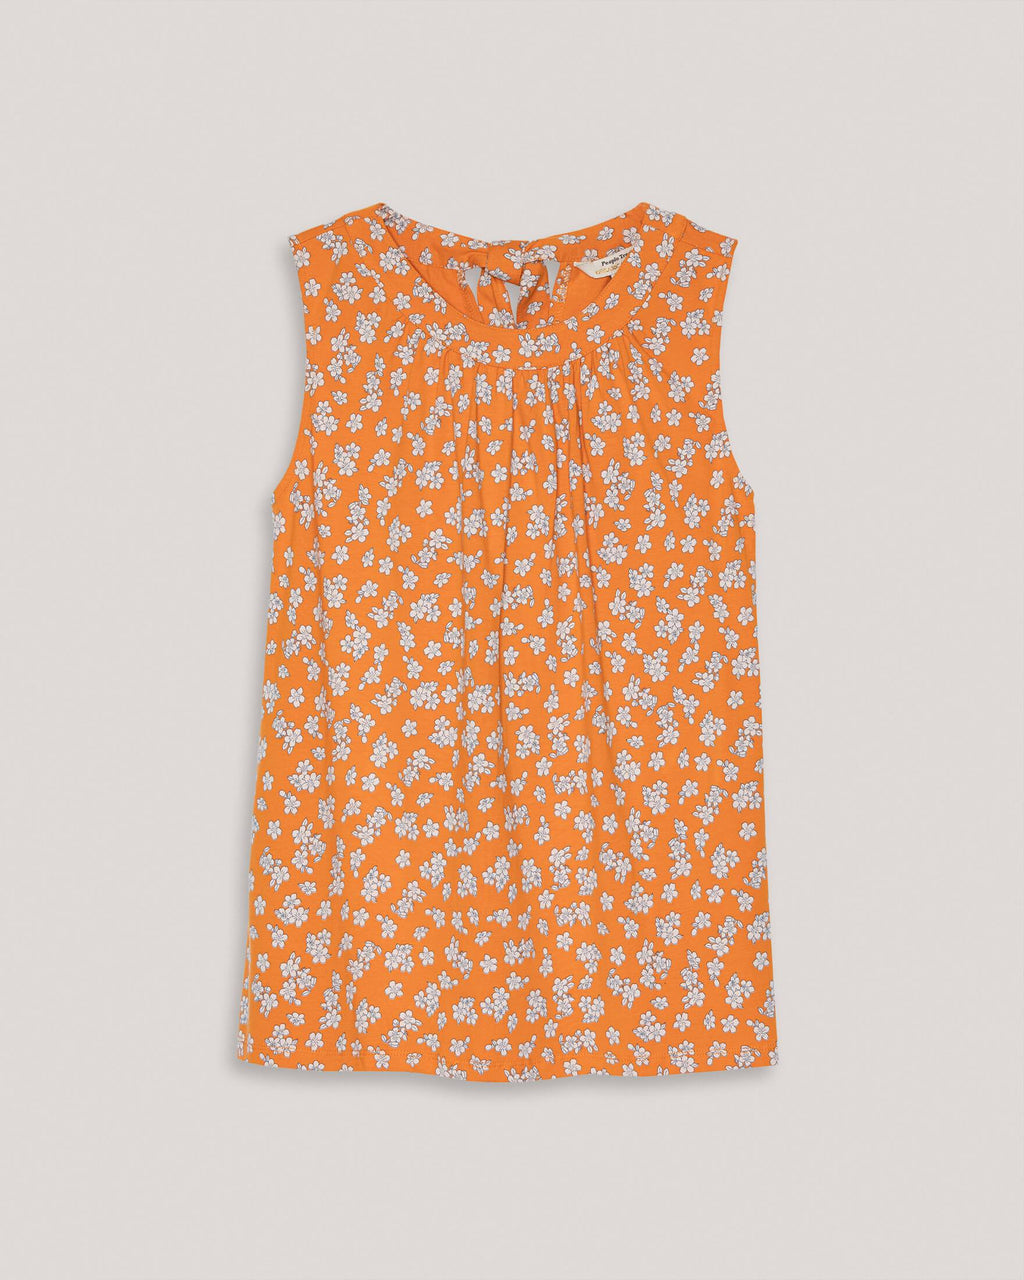 variant_1 | EN Top with Flowers Orange Women People tree | DE Top Oberteil mit Blumen Orange Damen People tree